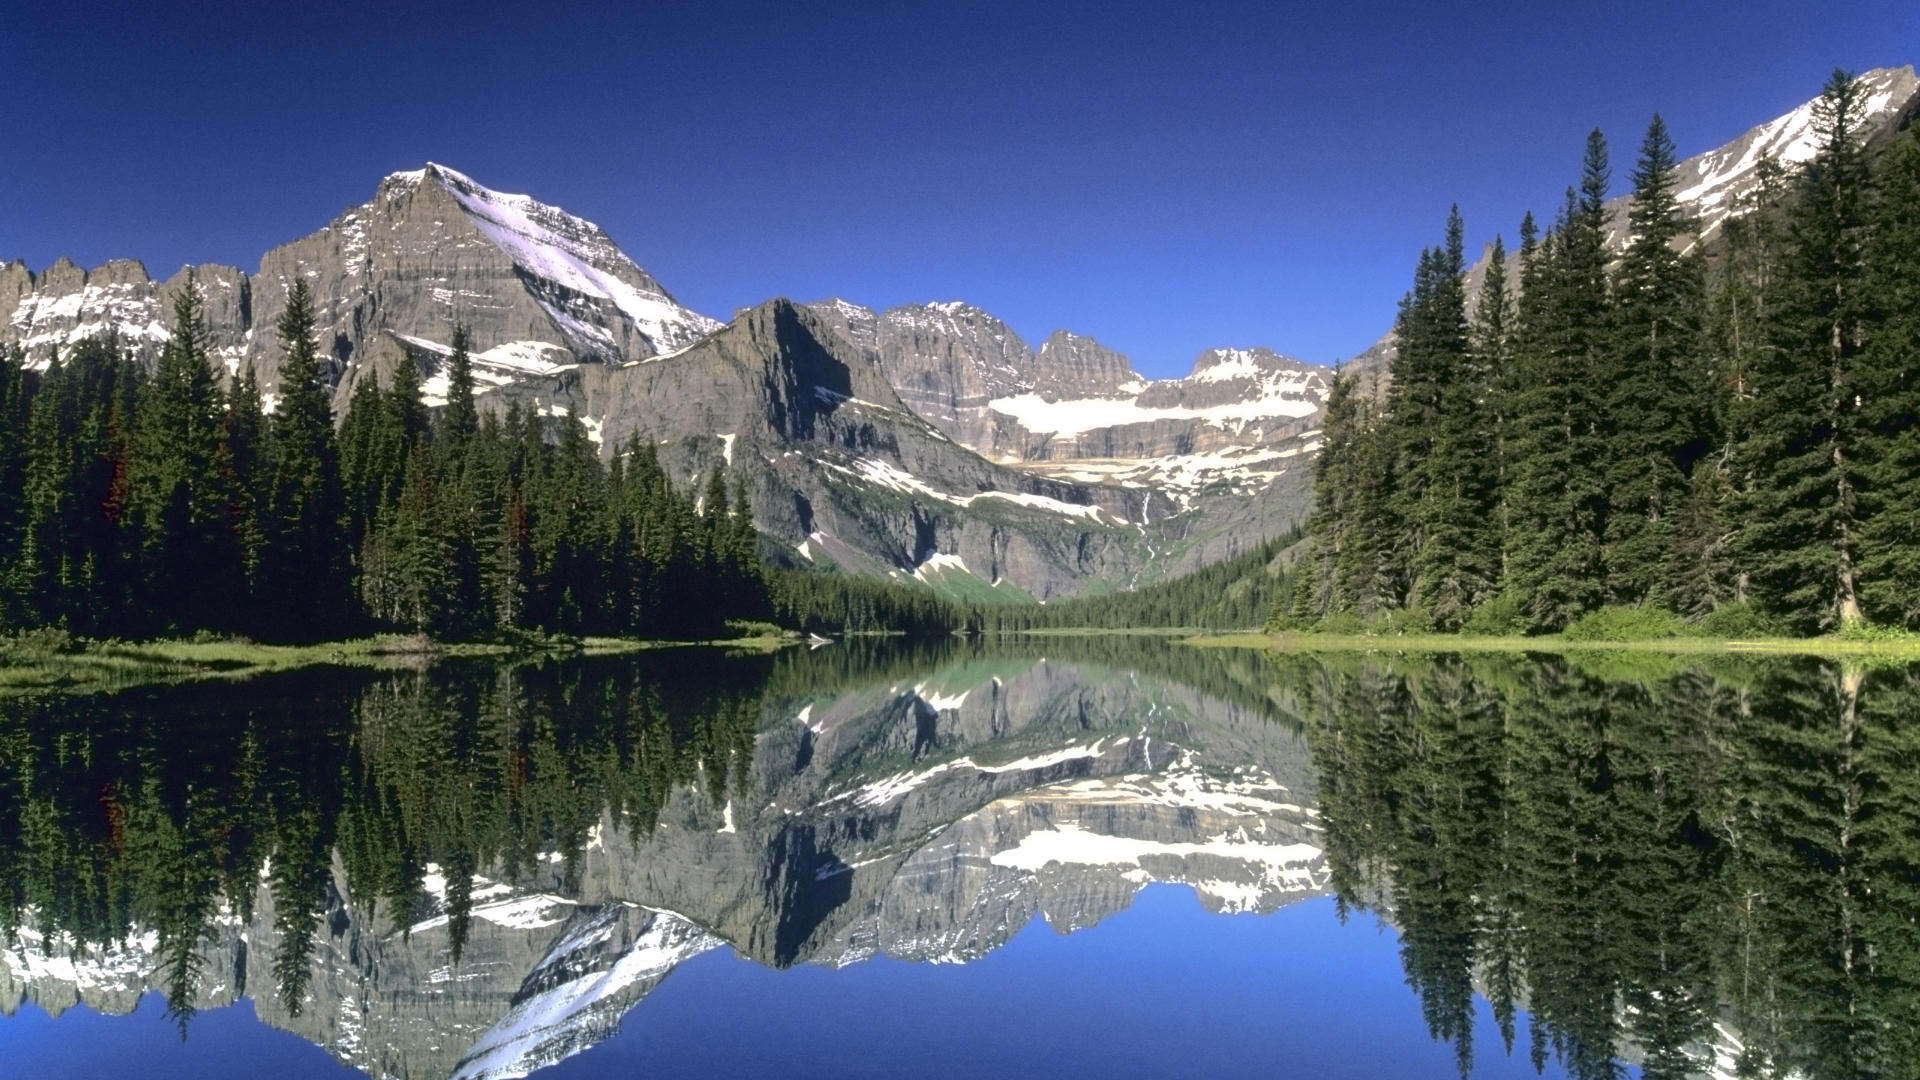 Montaña Nevada Hd: Glacier National Park Wallpapers High Quality